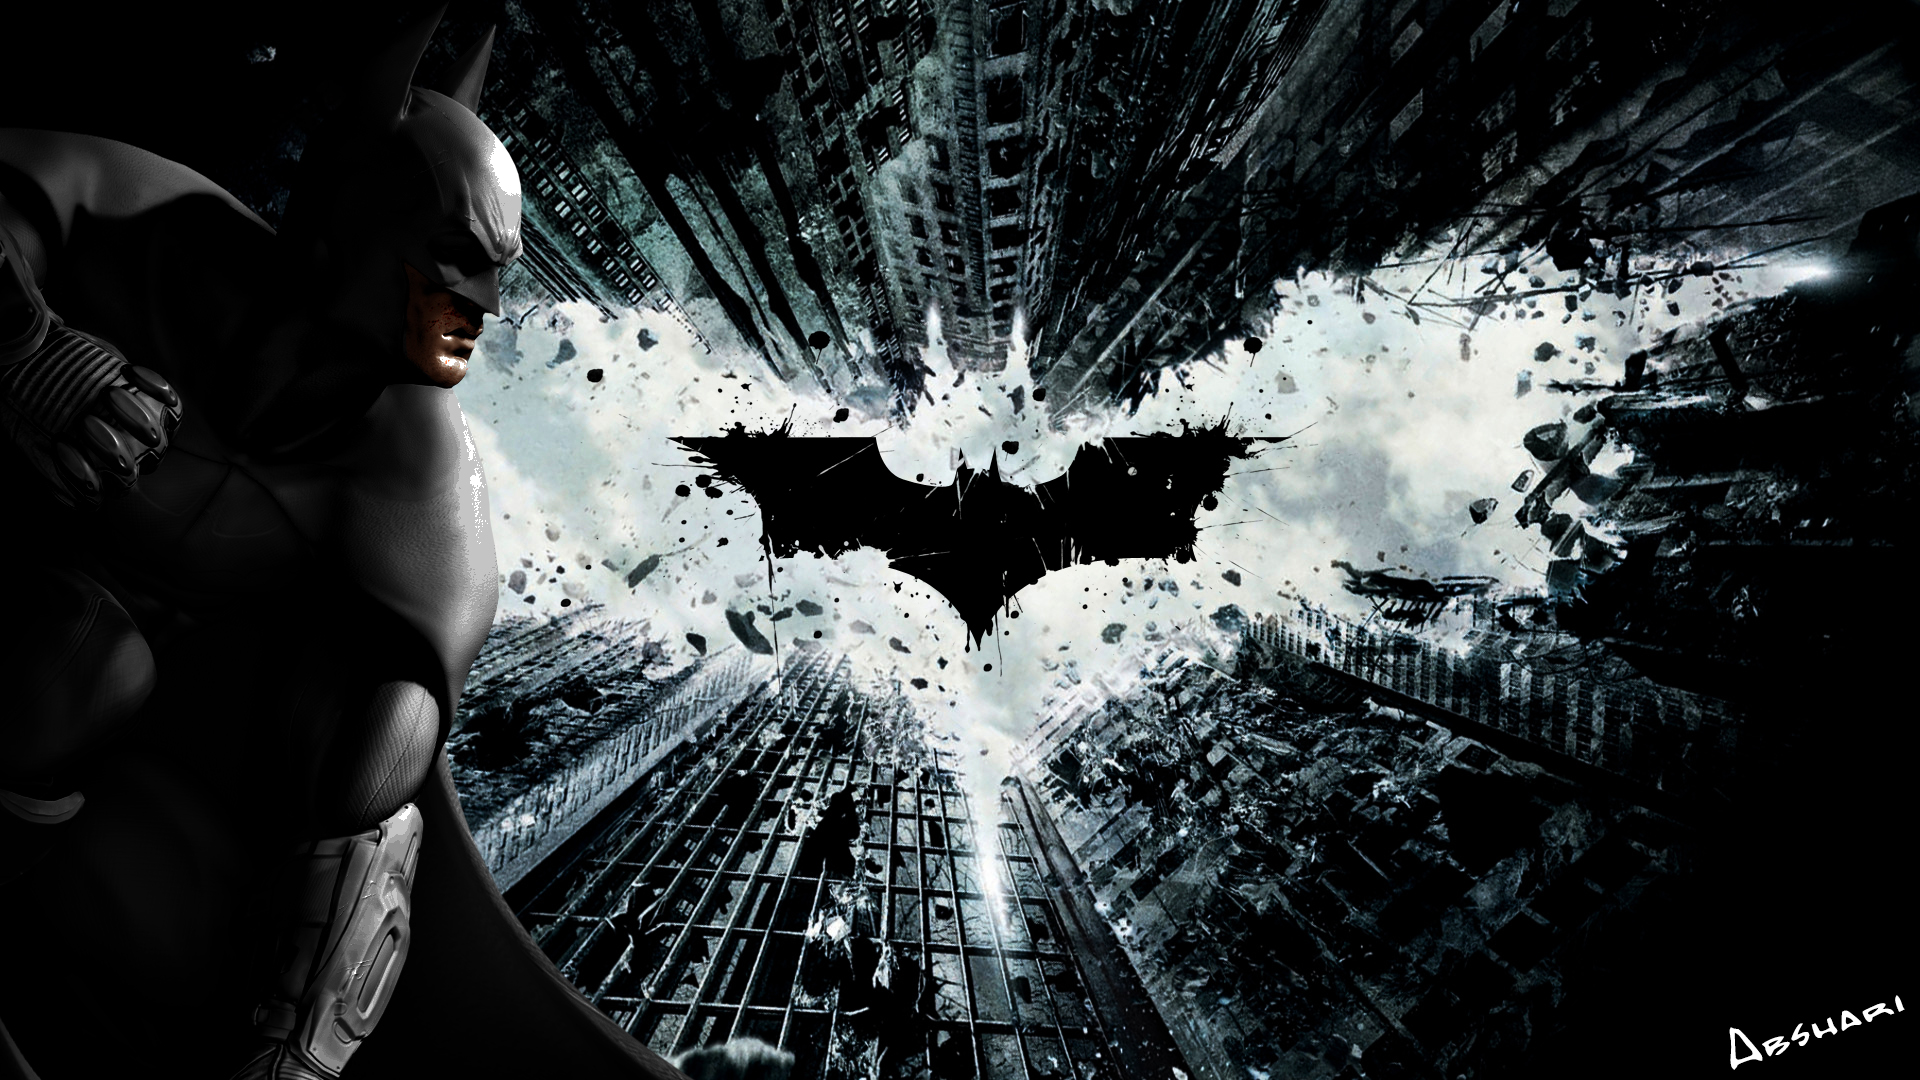 49 Dark Knight Rises Wallpaper 1920x1080 On Wallpapersafari